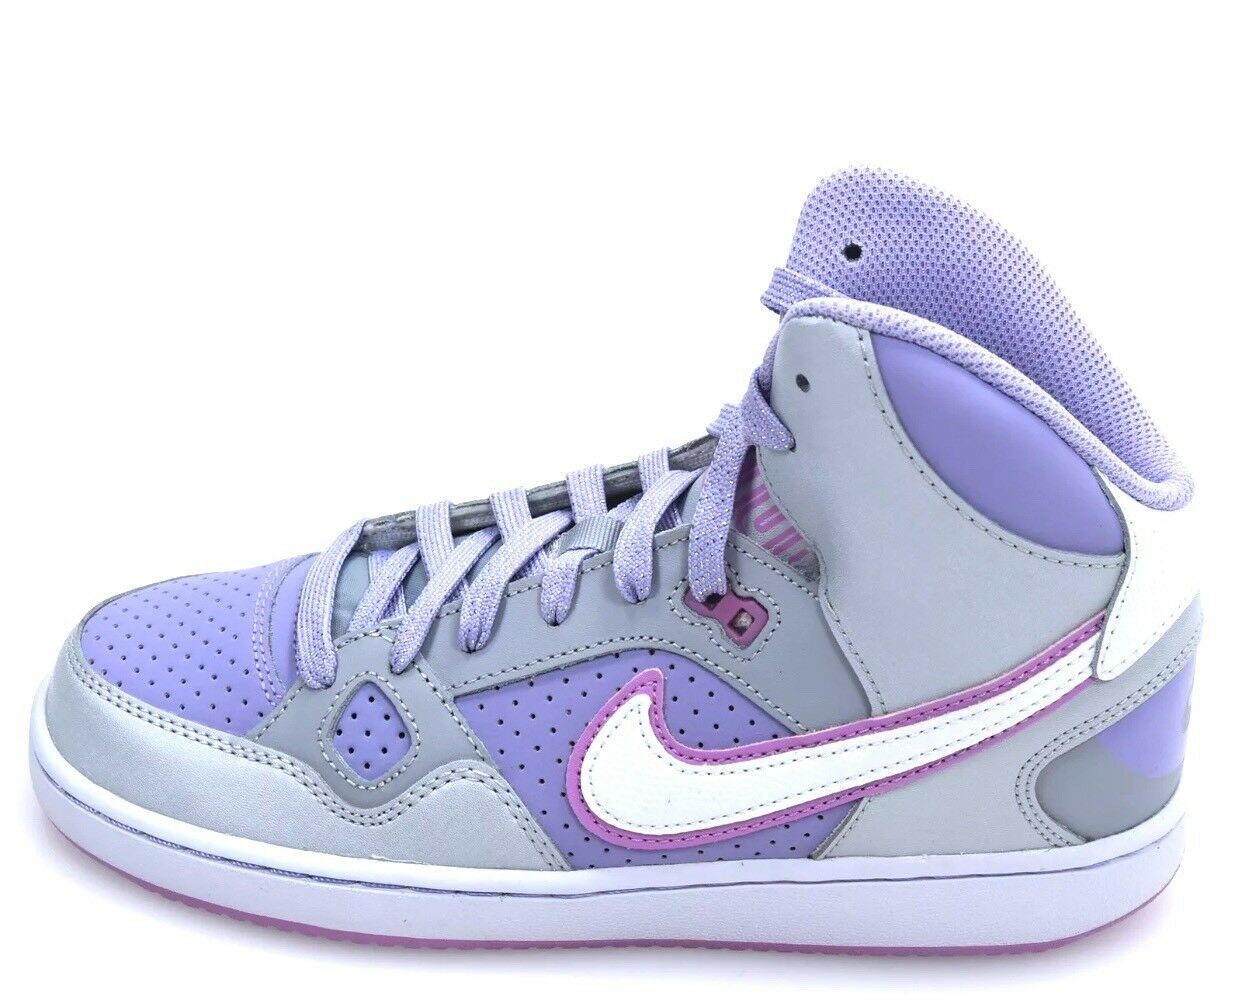 Nike Force Girls Size 5.5Y Shoes Hi Mid Top Purple/Gray 616371-007